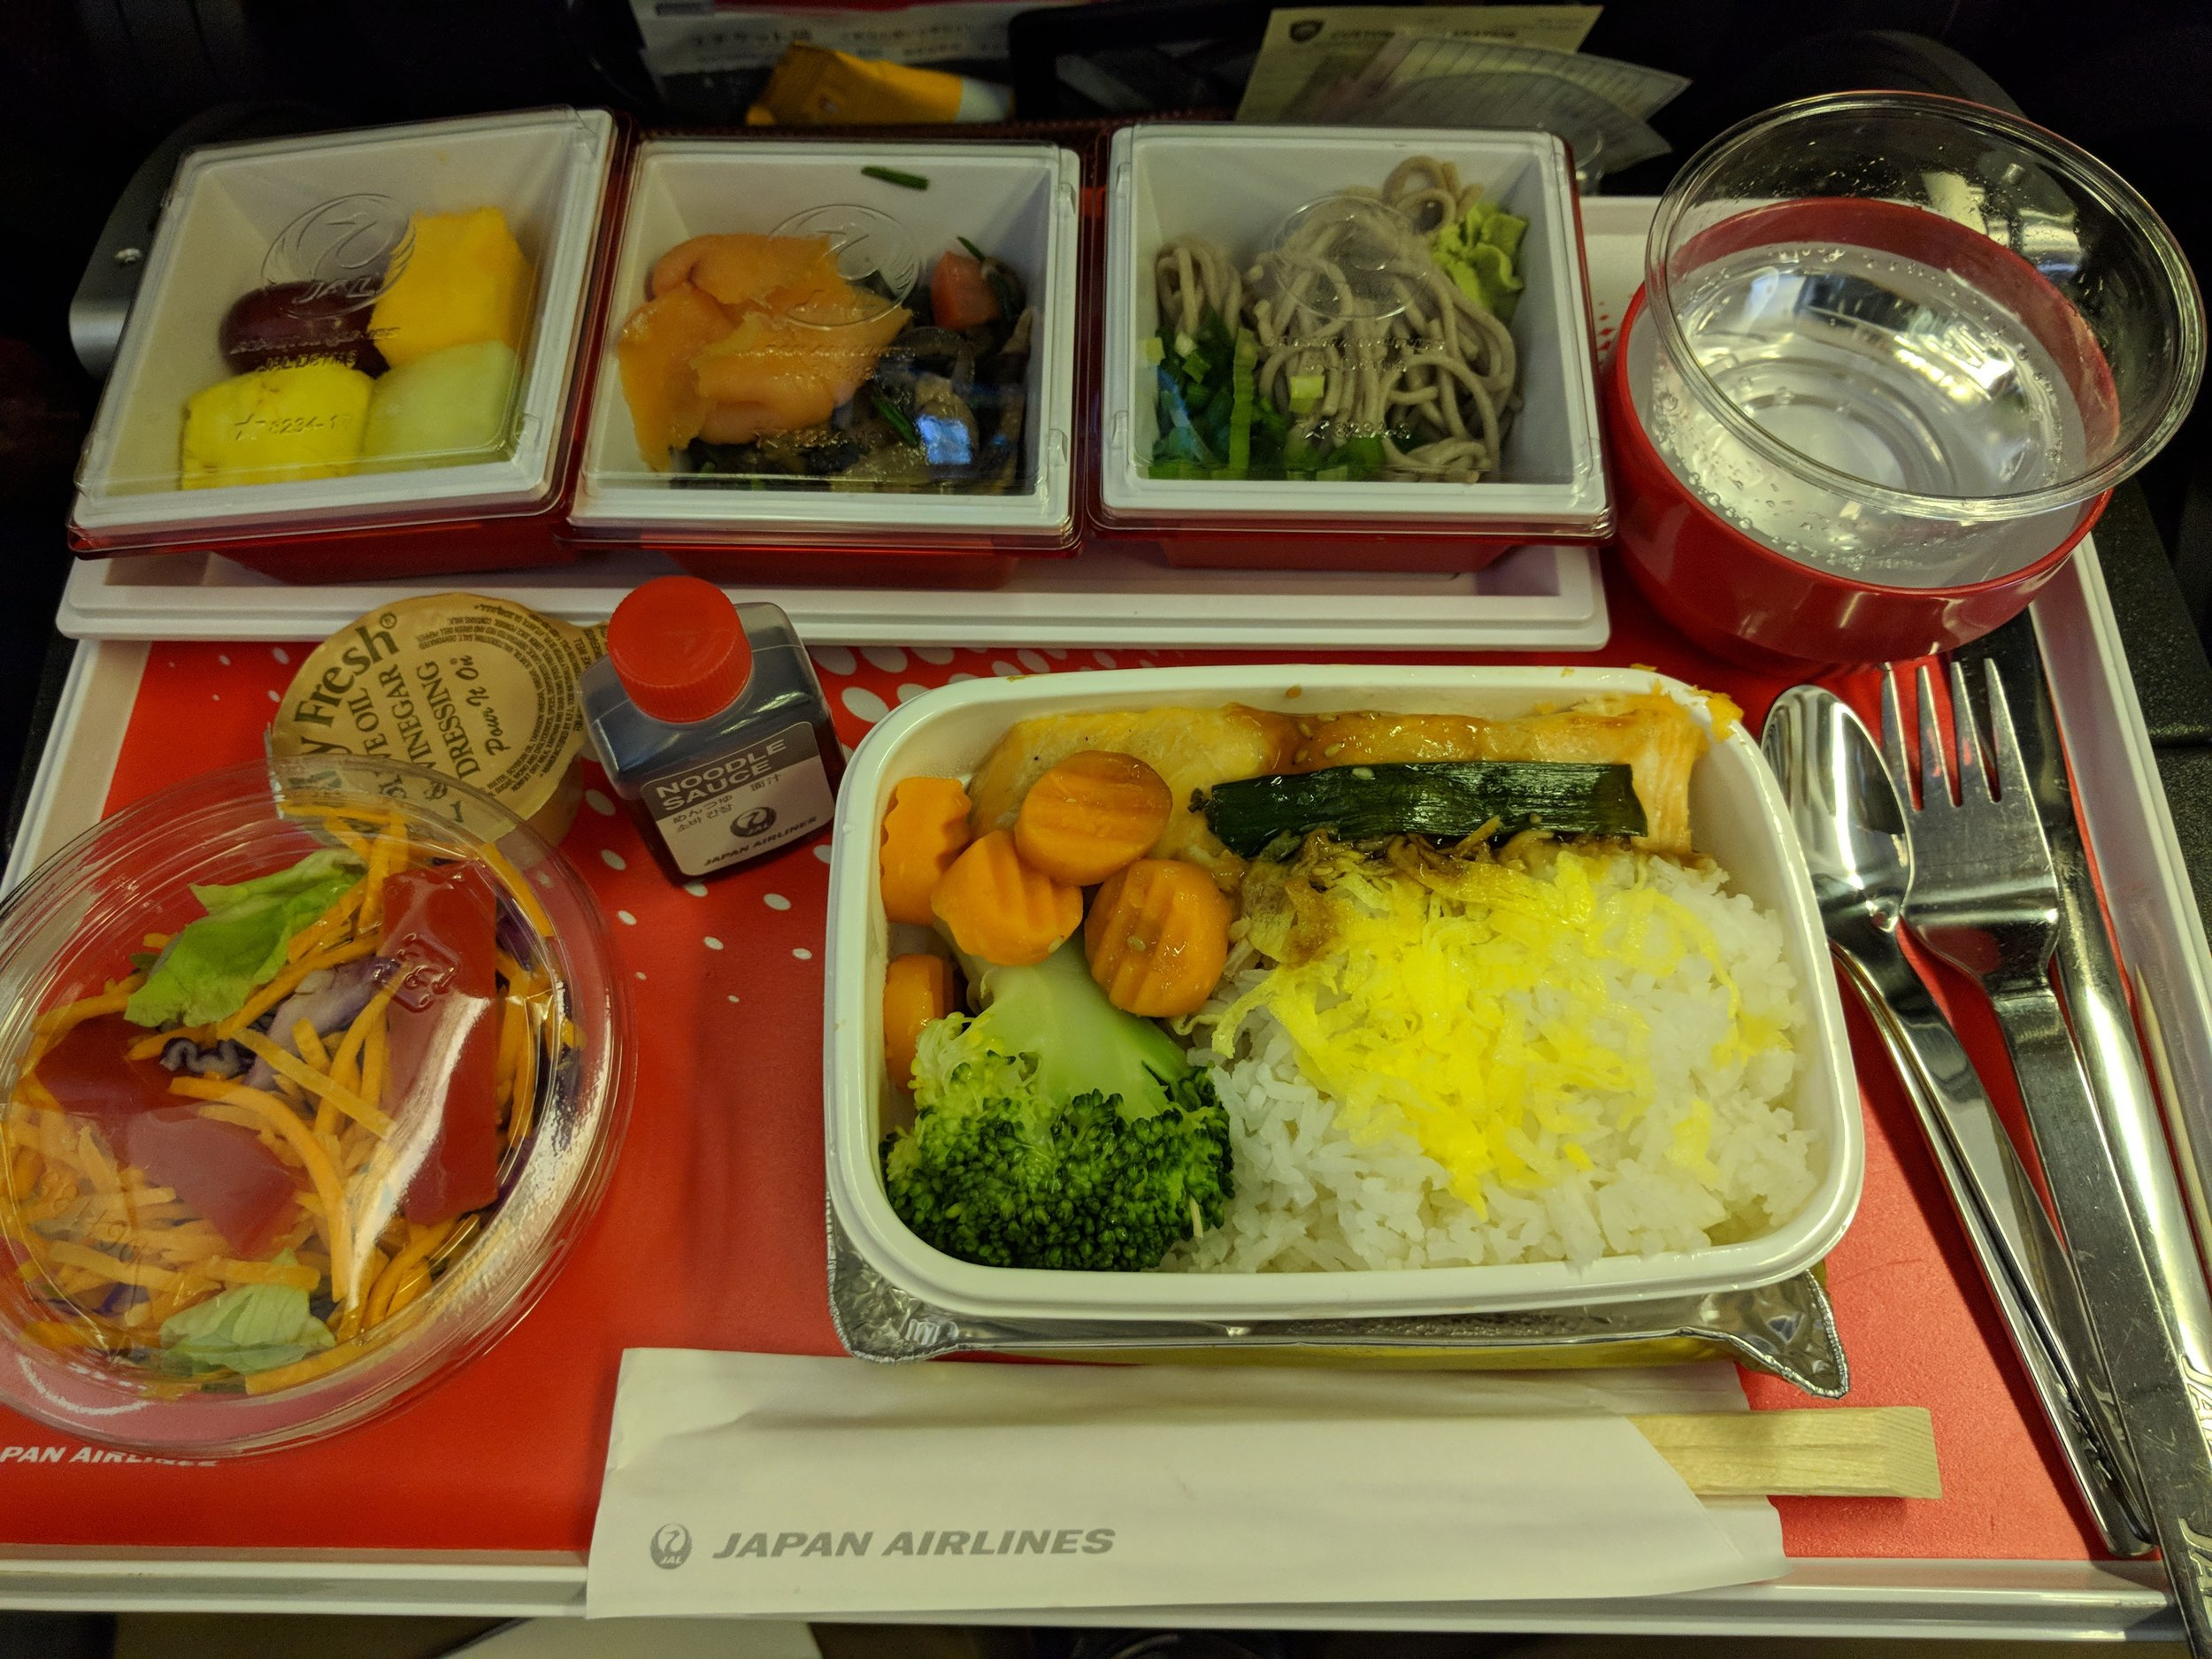 The first meal of the flight.